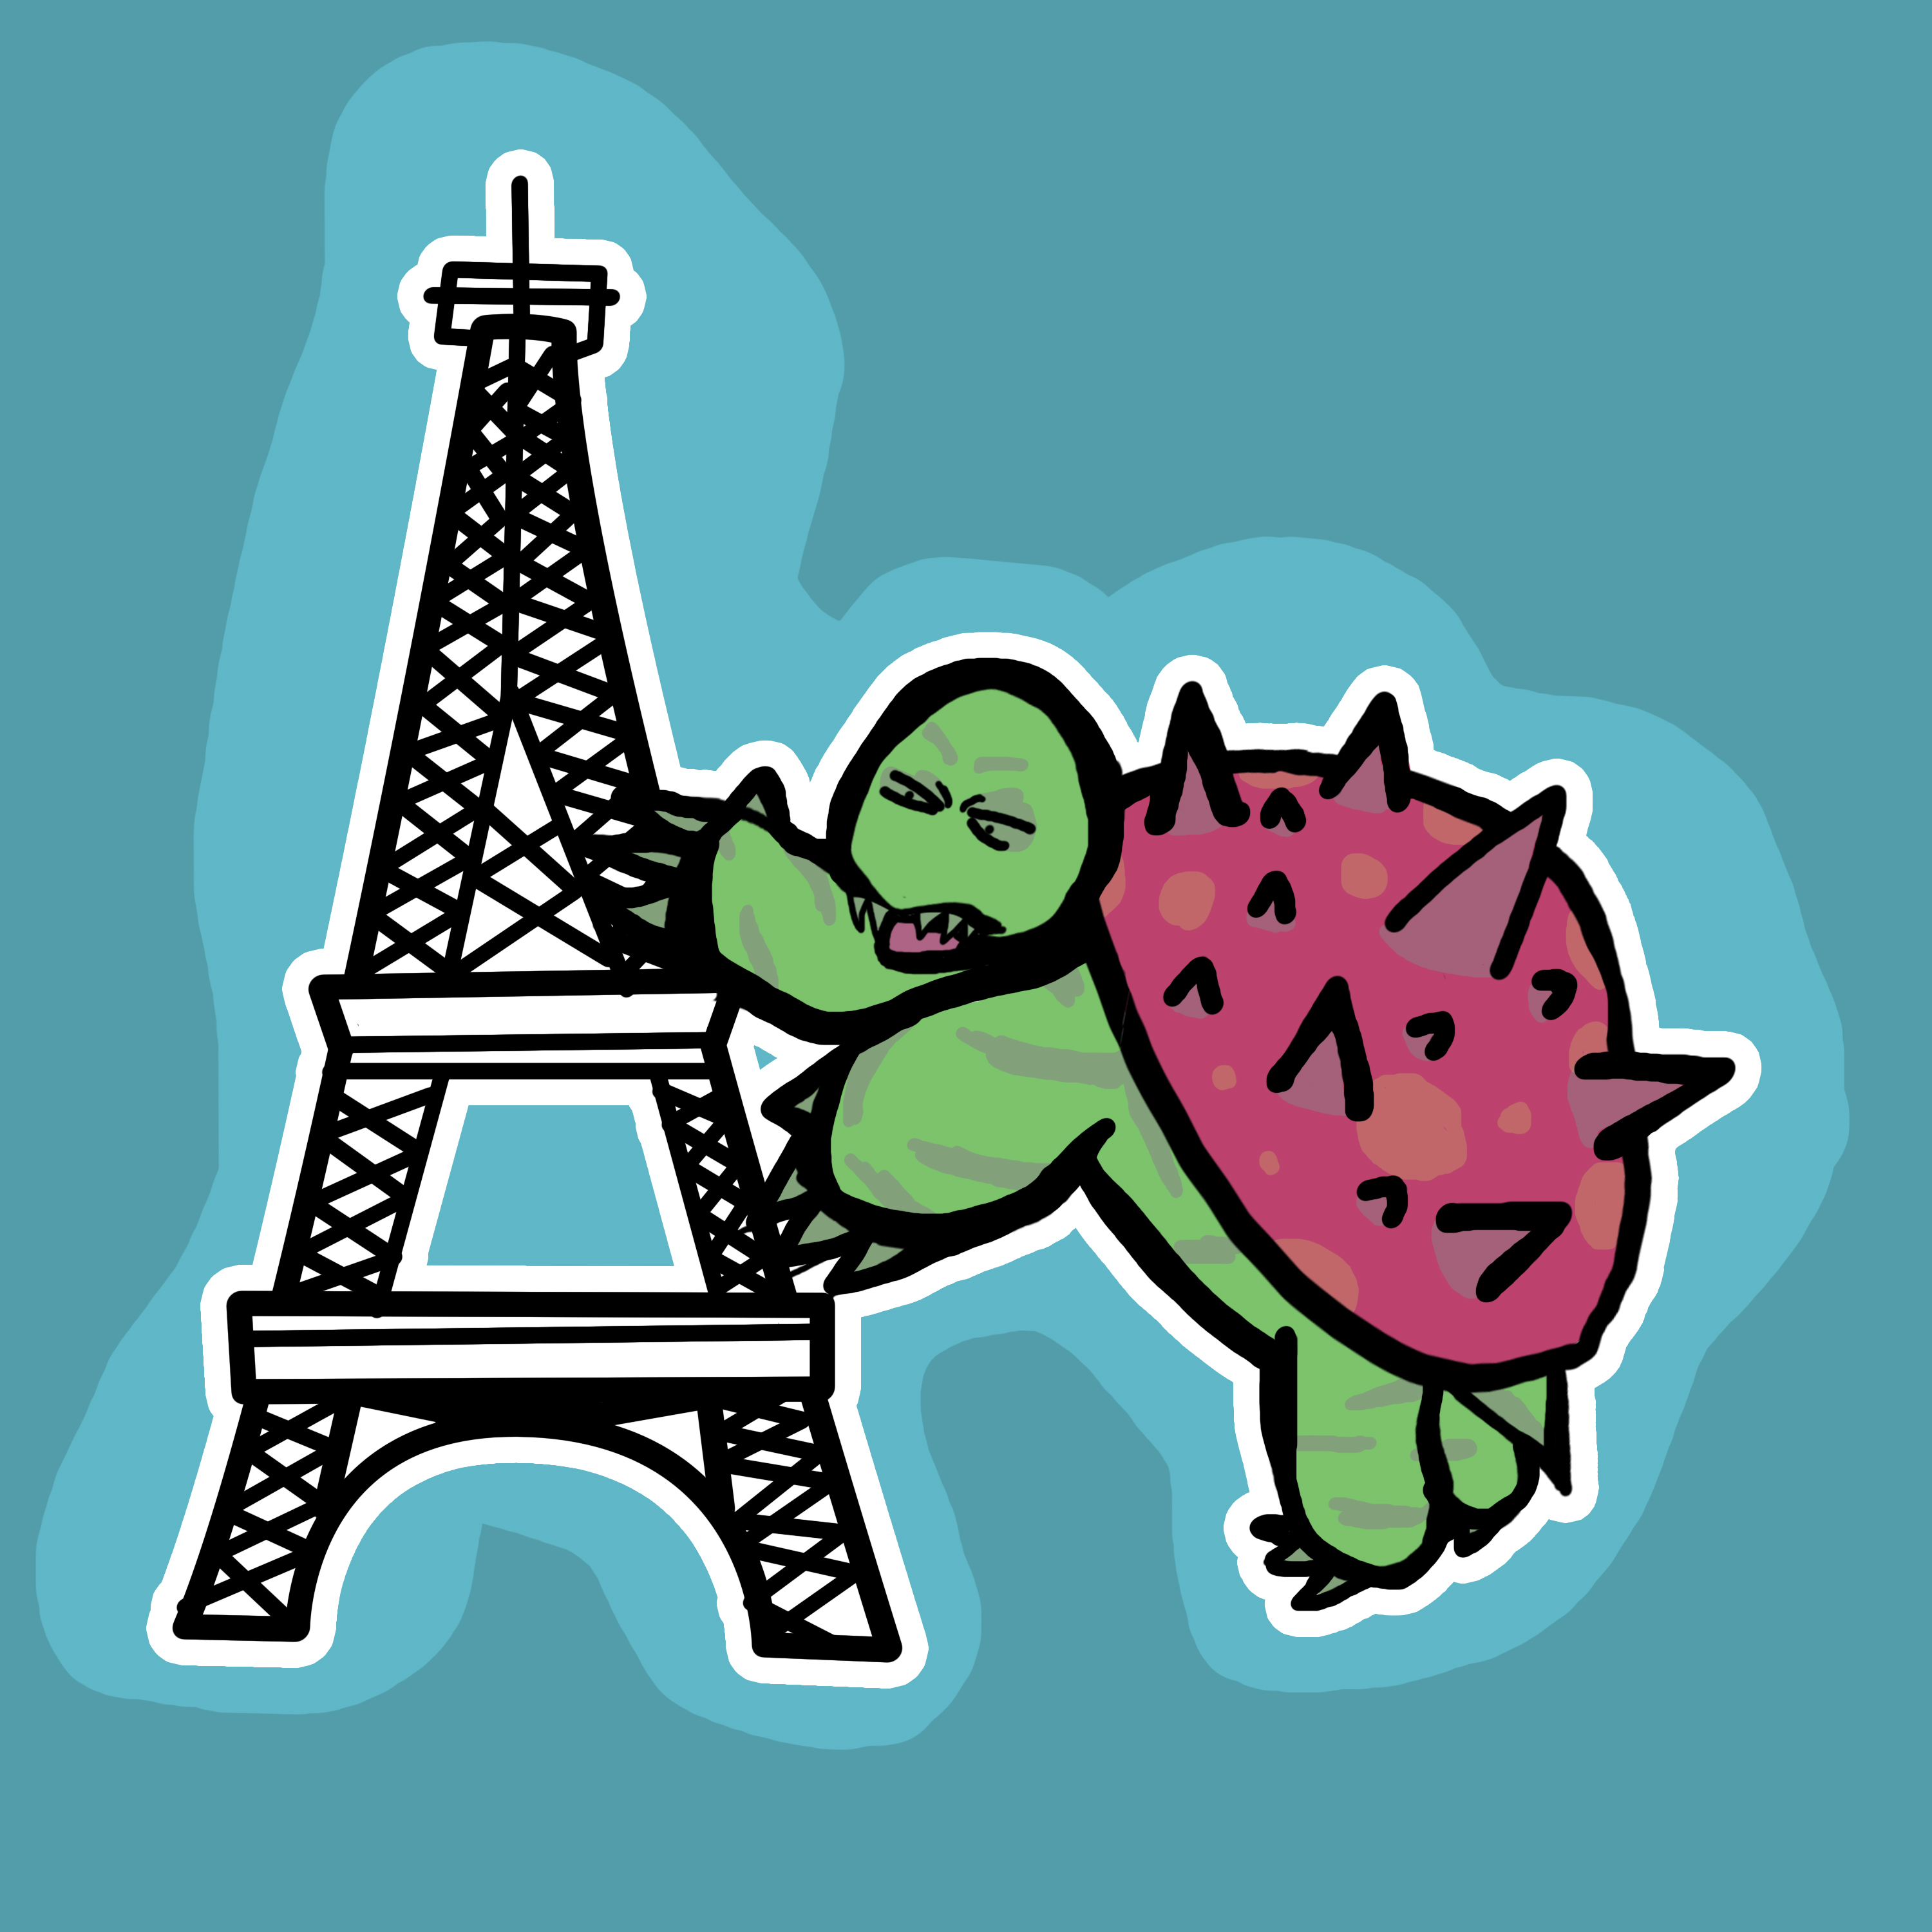 Turtle Vs Eiffel Tower by HLGR4G3 on Newgrounds